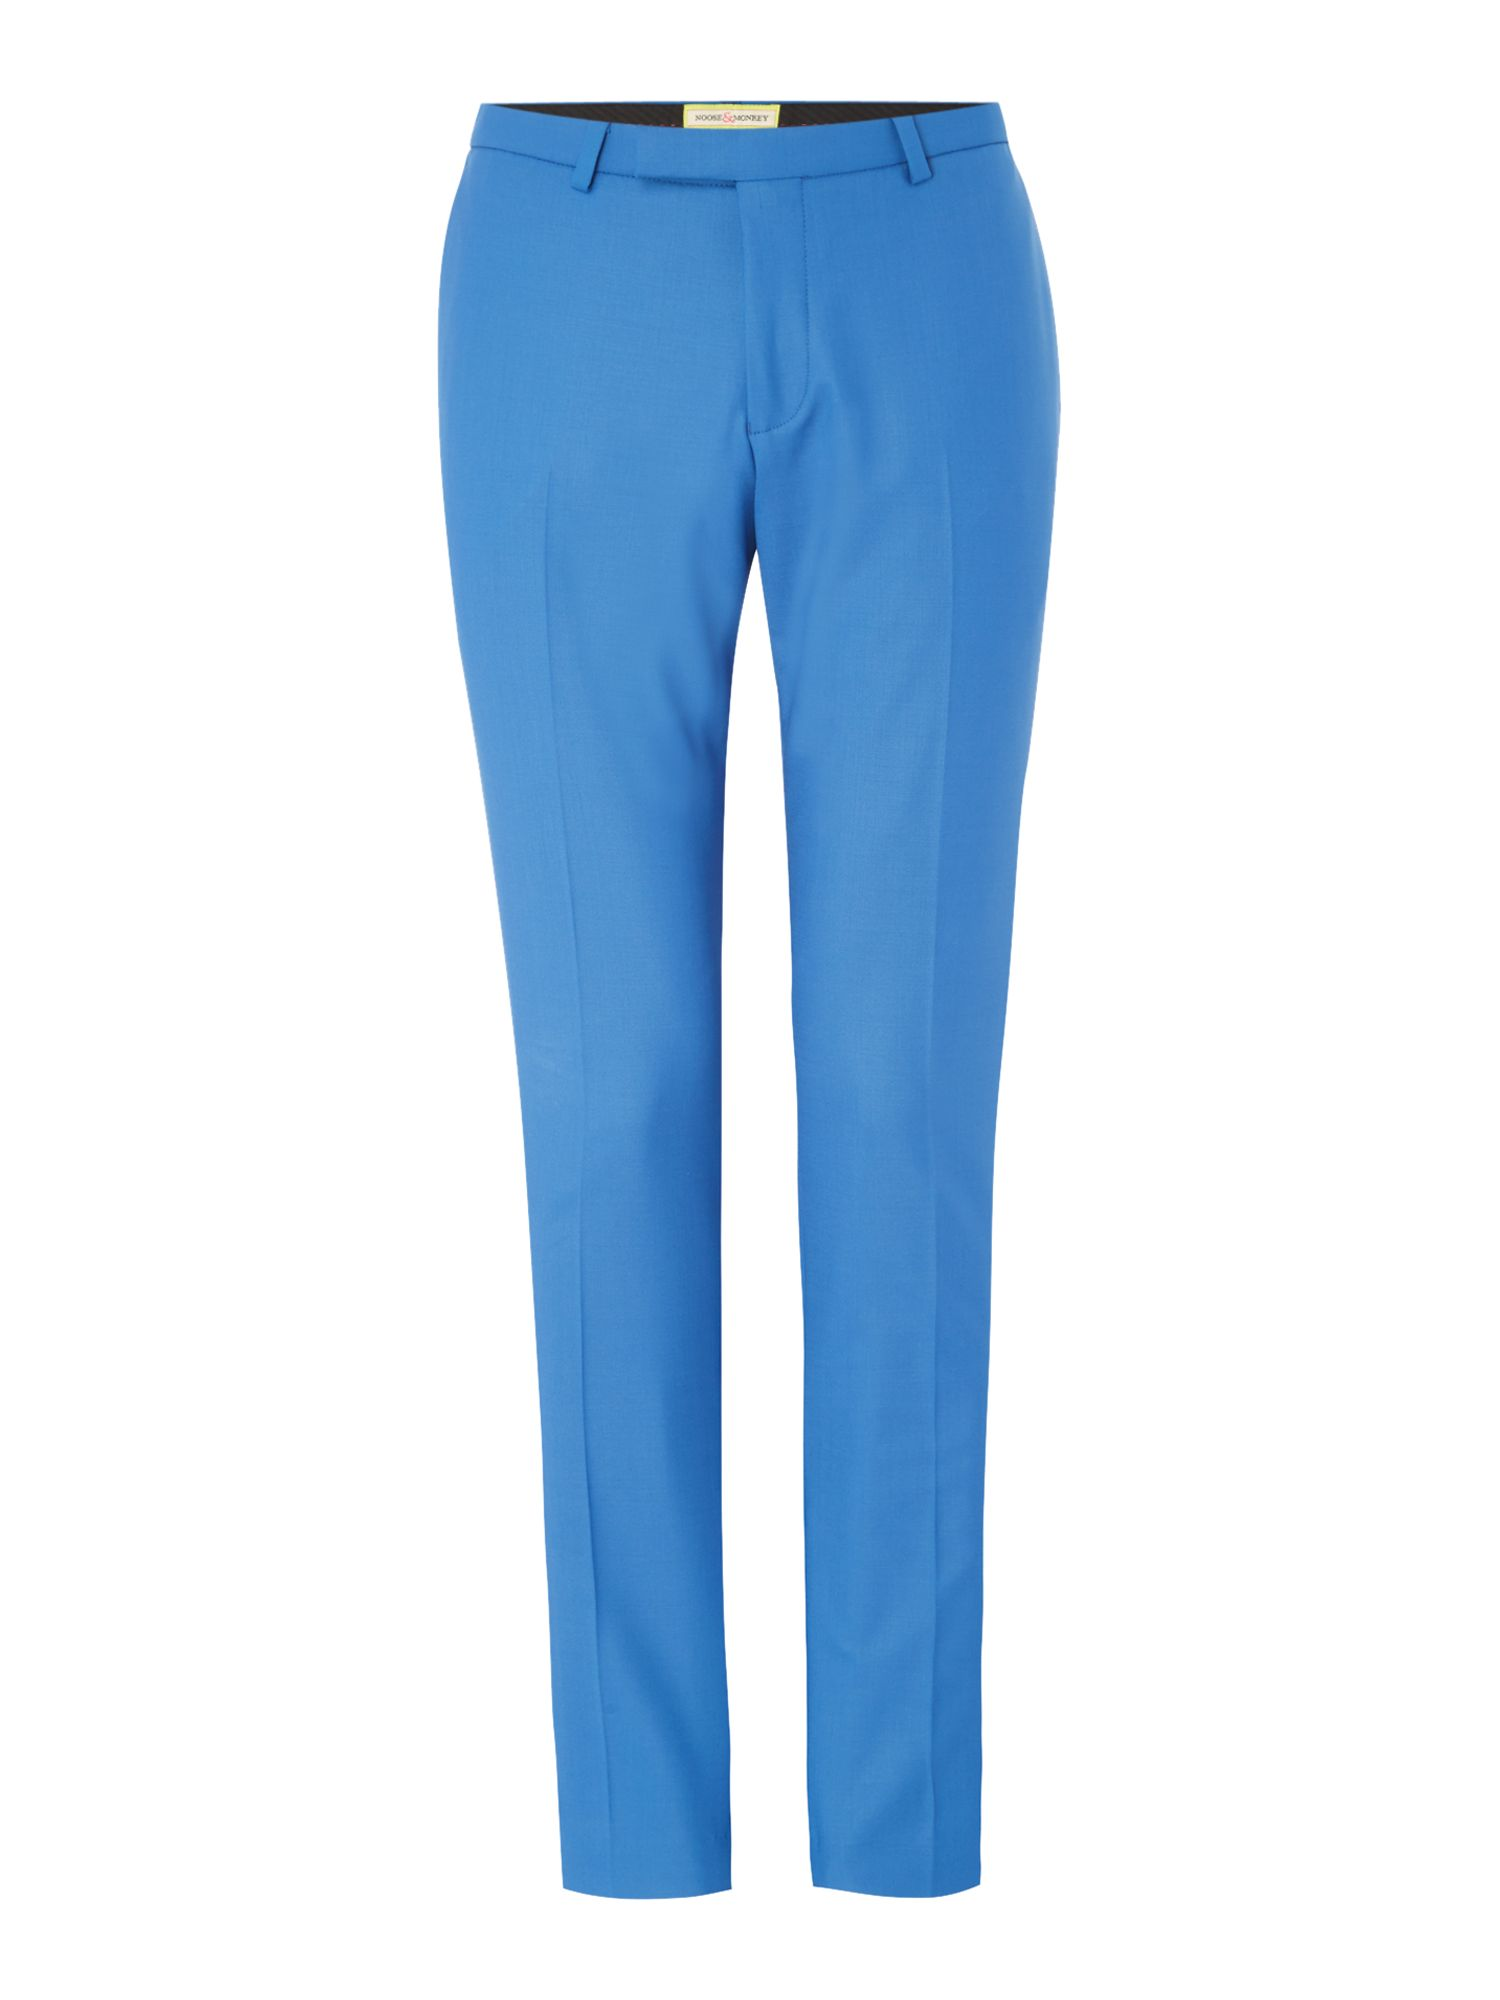 Noose and Monkey Men's Noose and Monkey Skinny Trouser, Blue